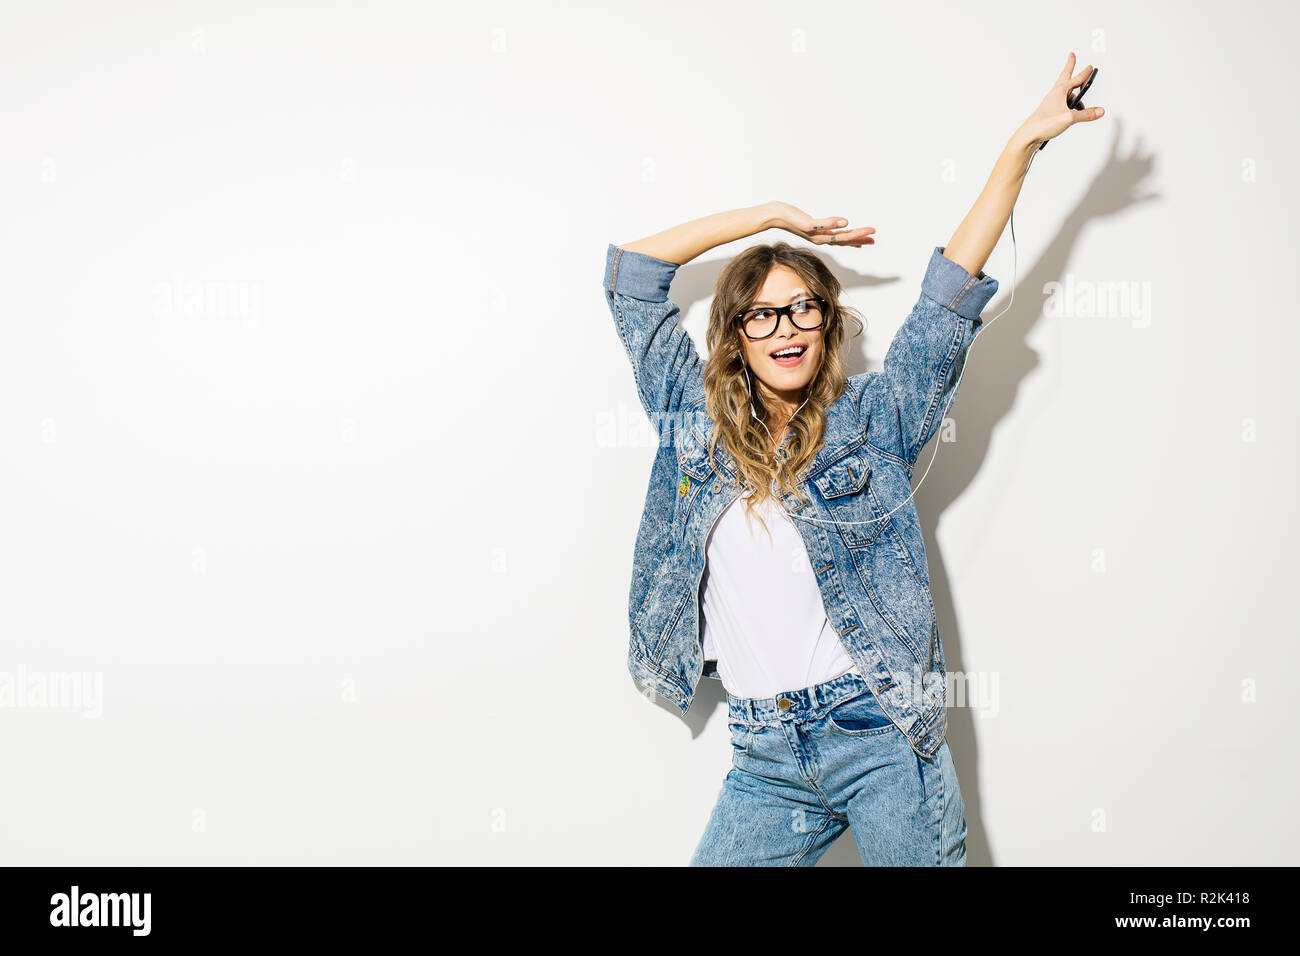 1b30d59d6a04 listen to the music and dance. concept with a young expressive beautiful  woman in retro jeans outfit listening music with headphones and dancing, on  w